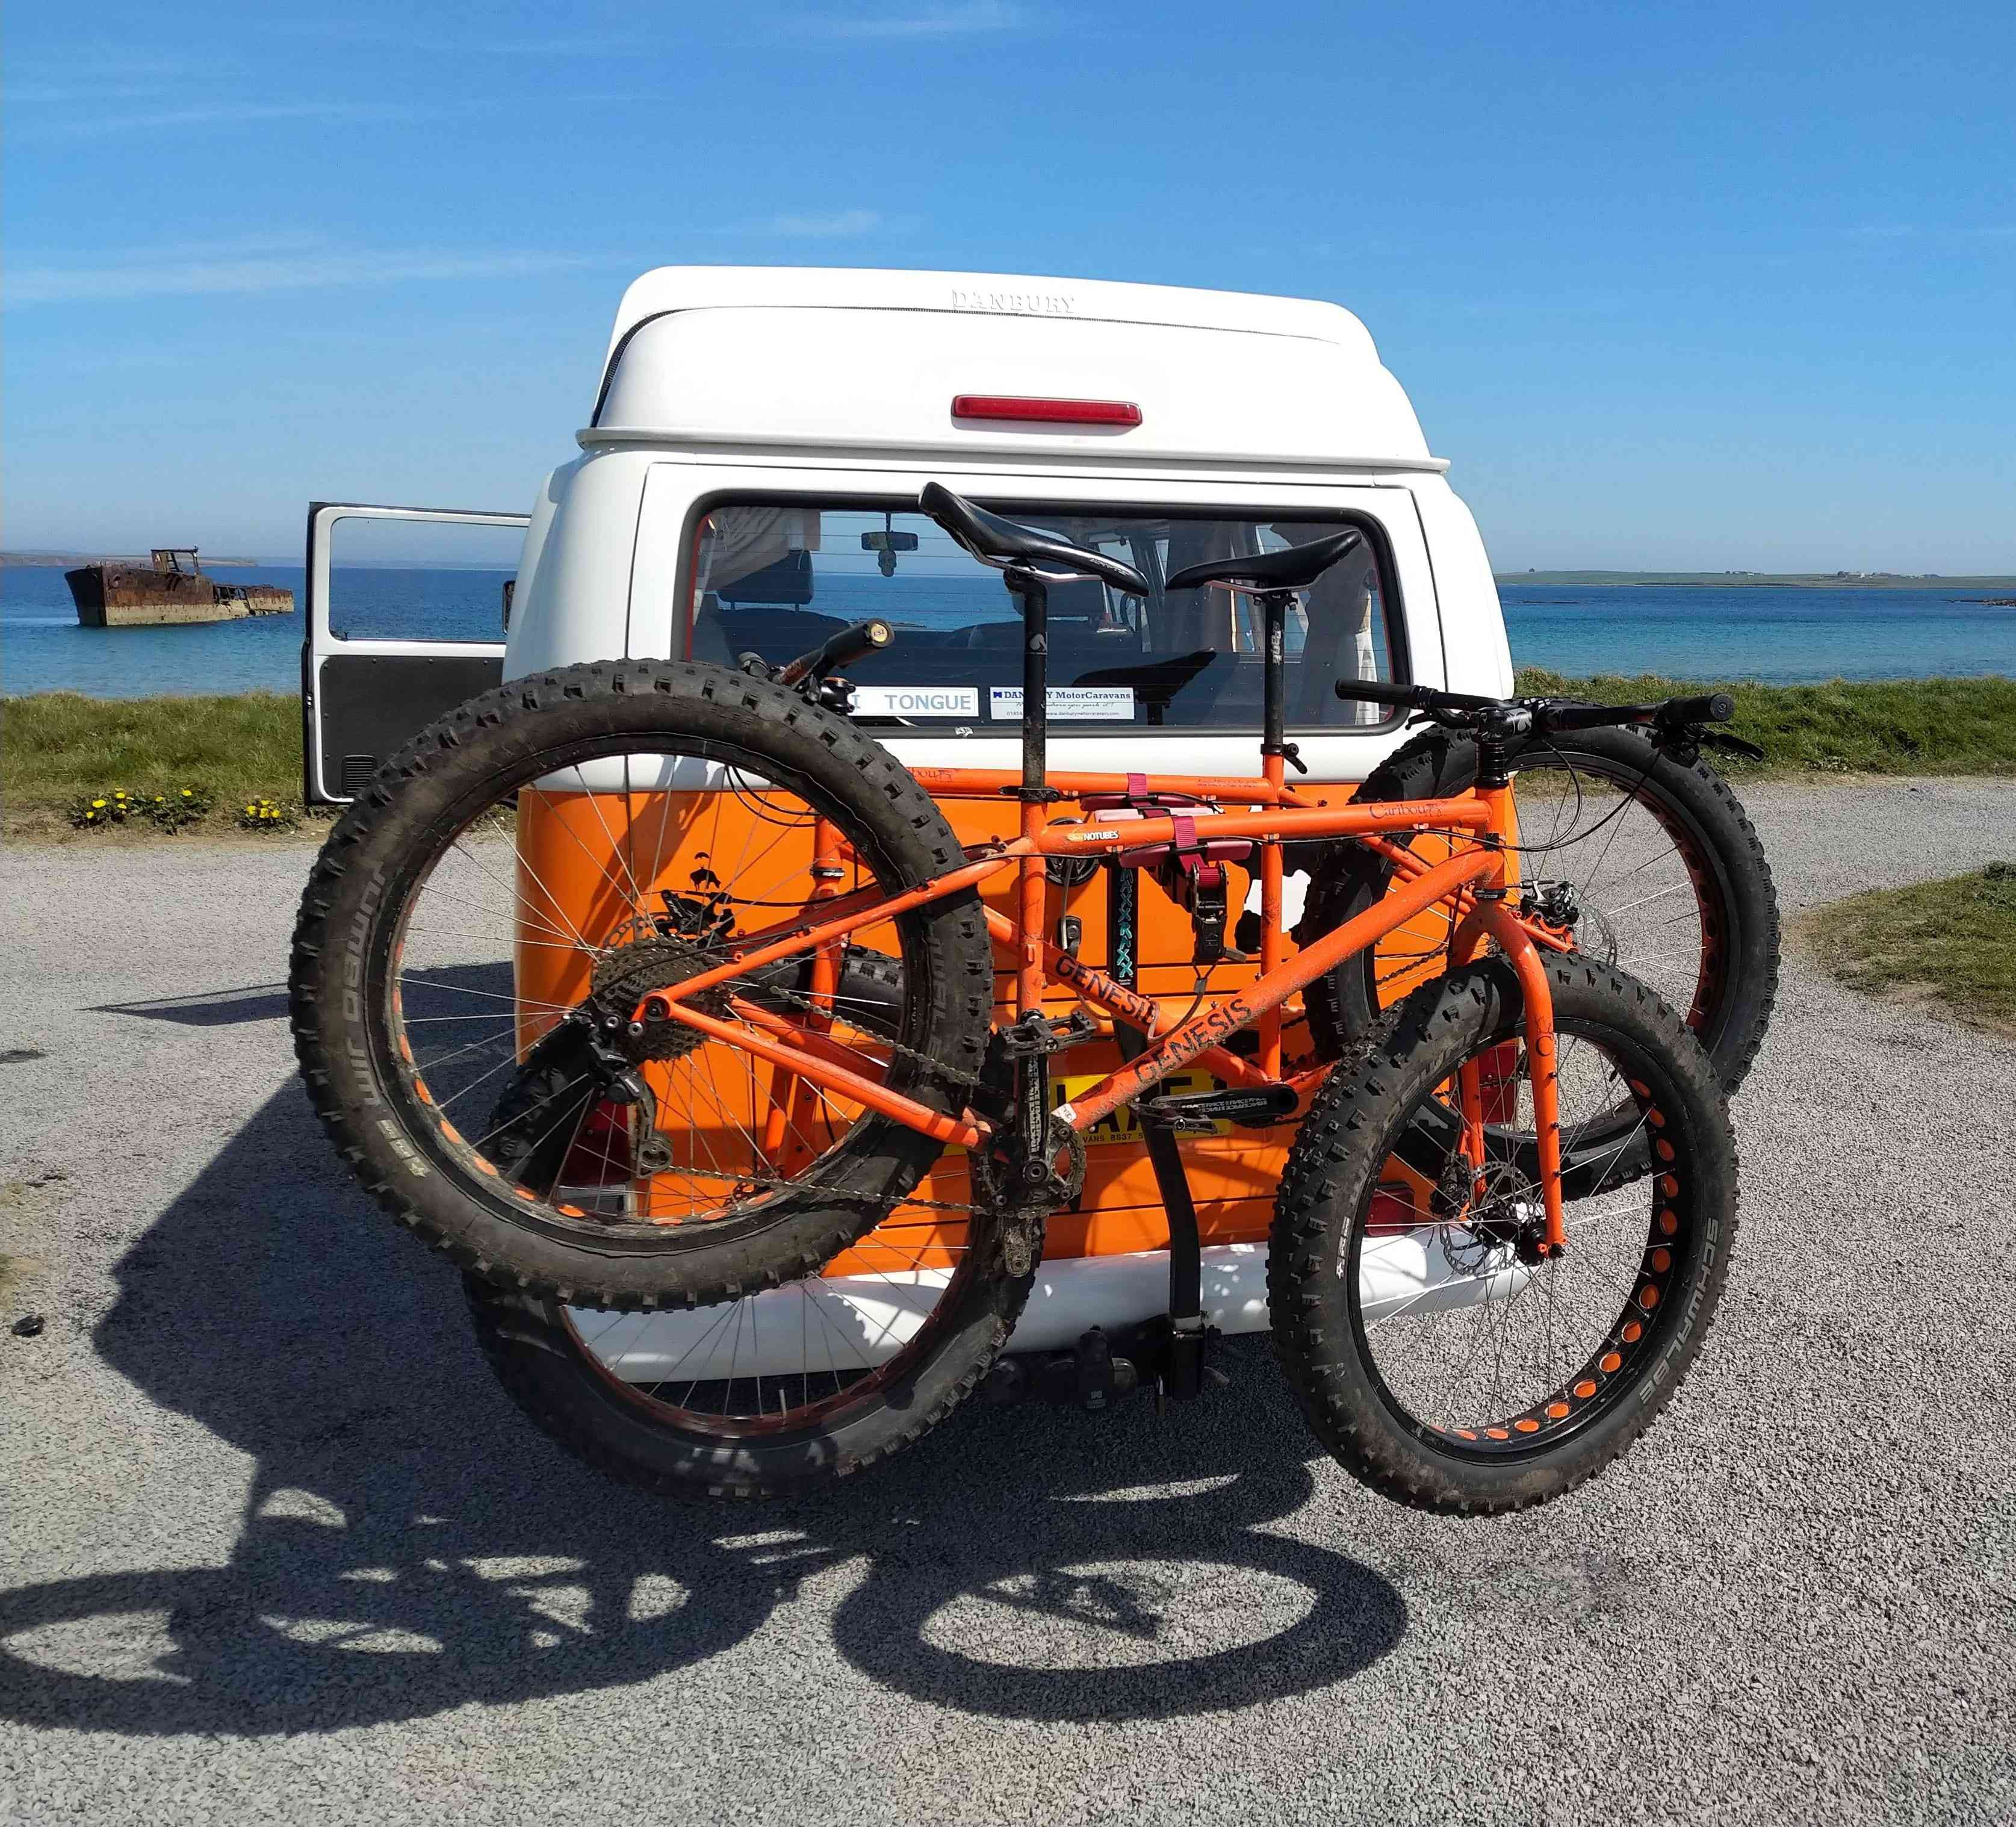 Fat Bike Hire now available